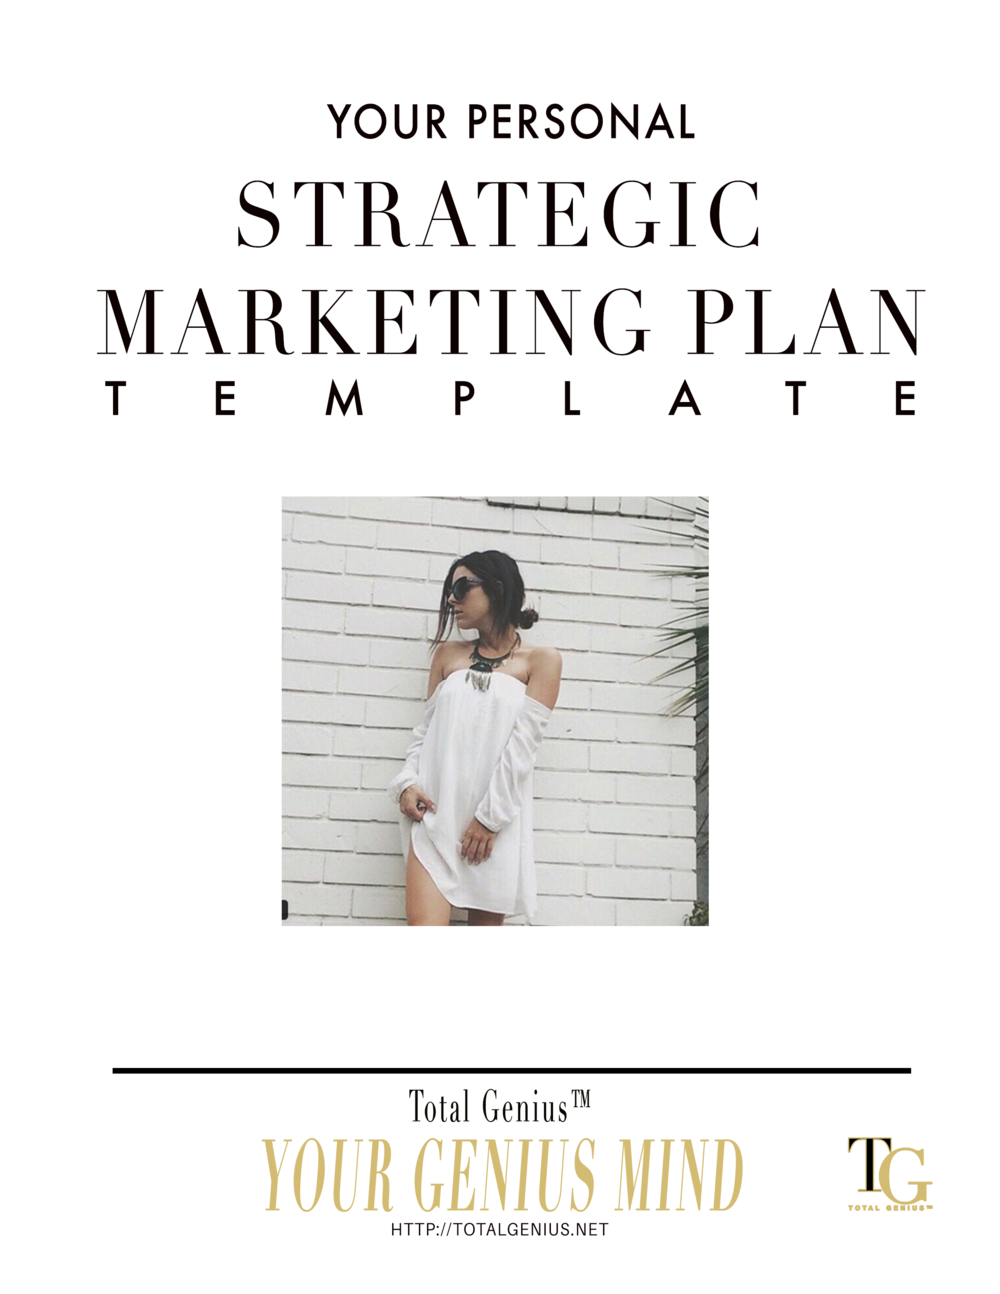 Marketing Plan Template free download